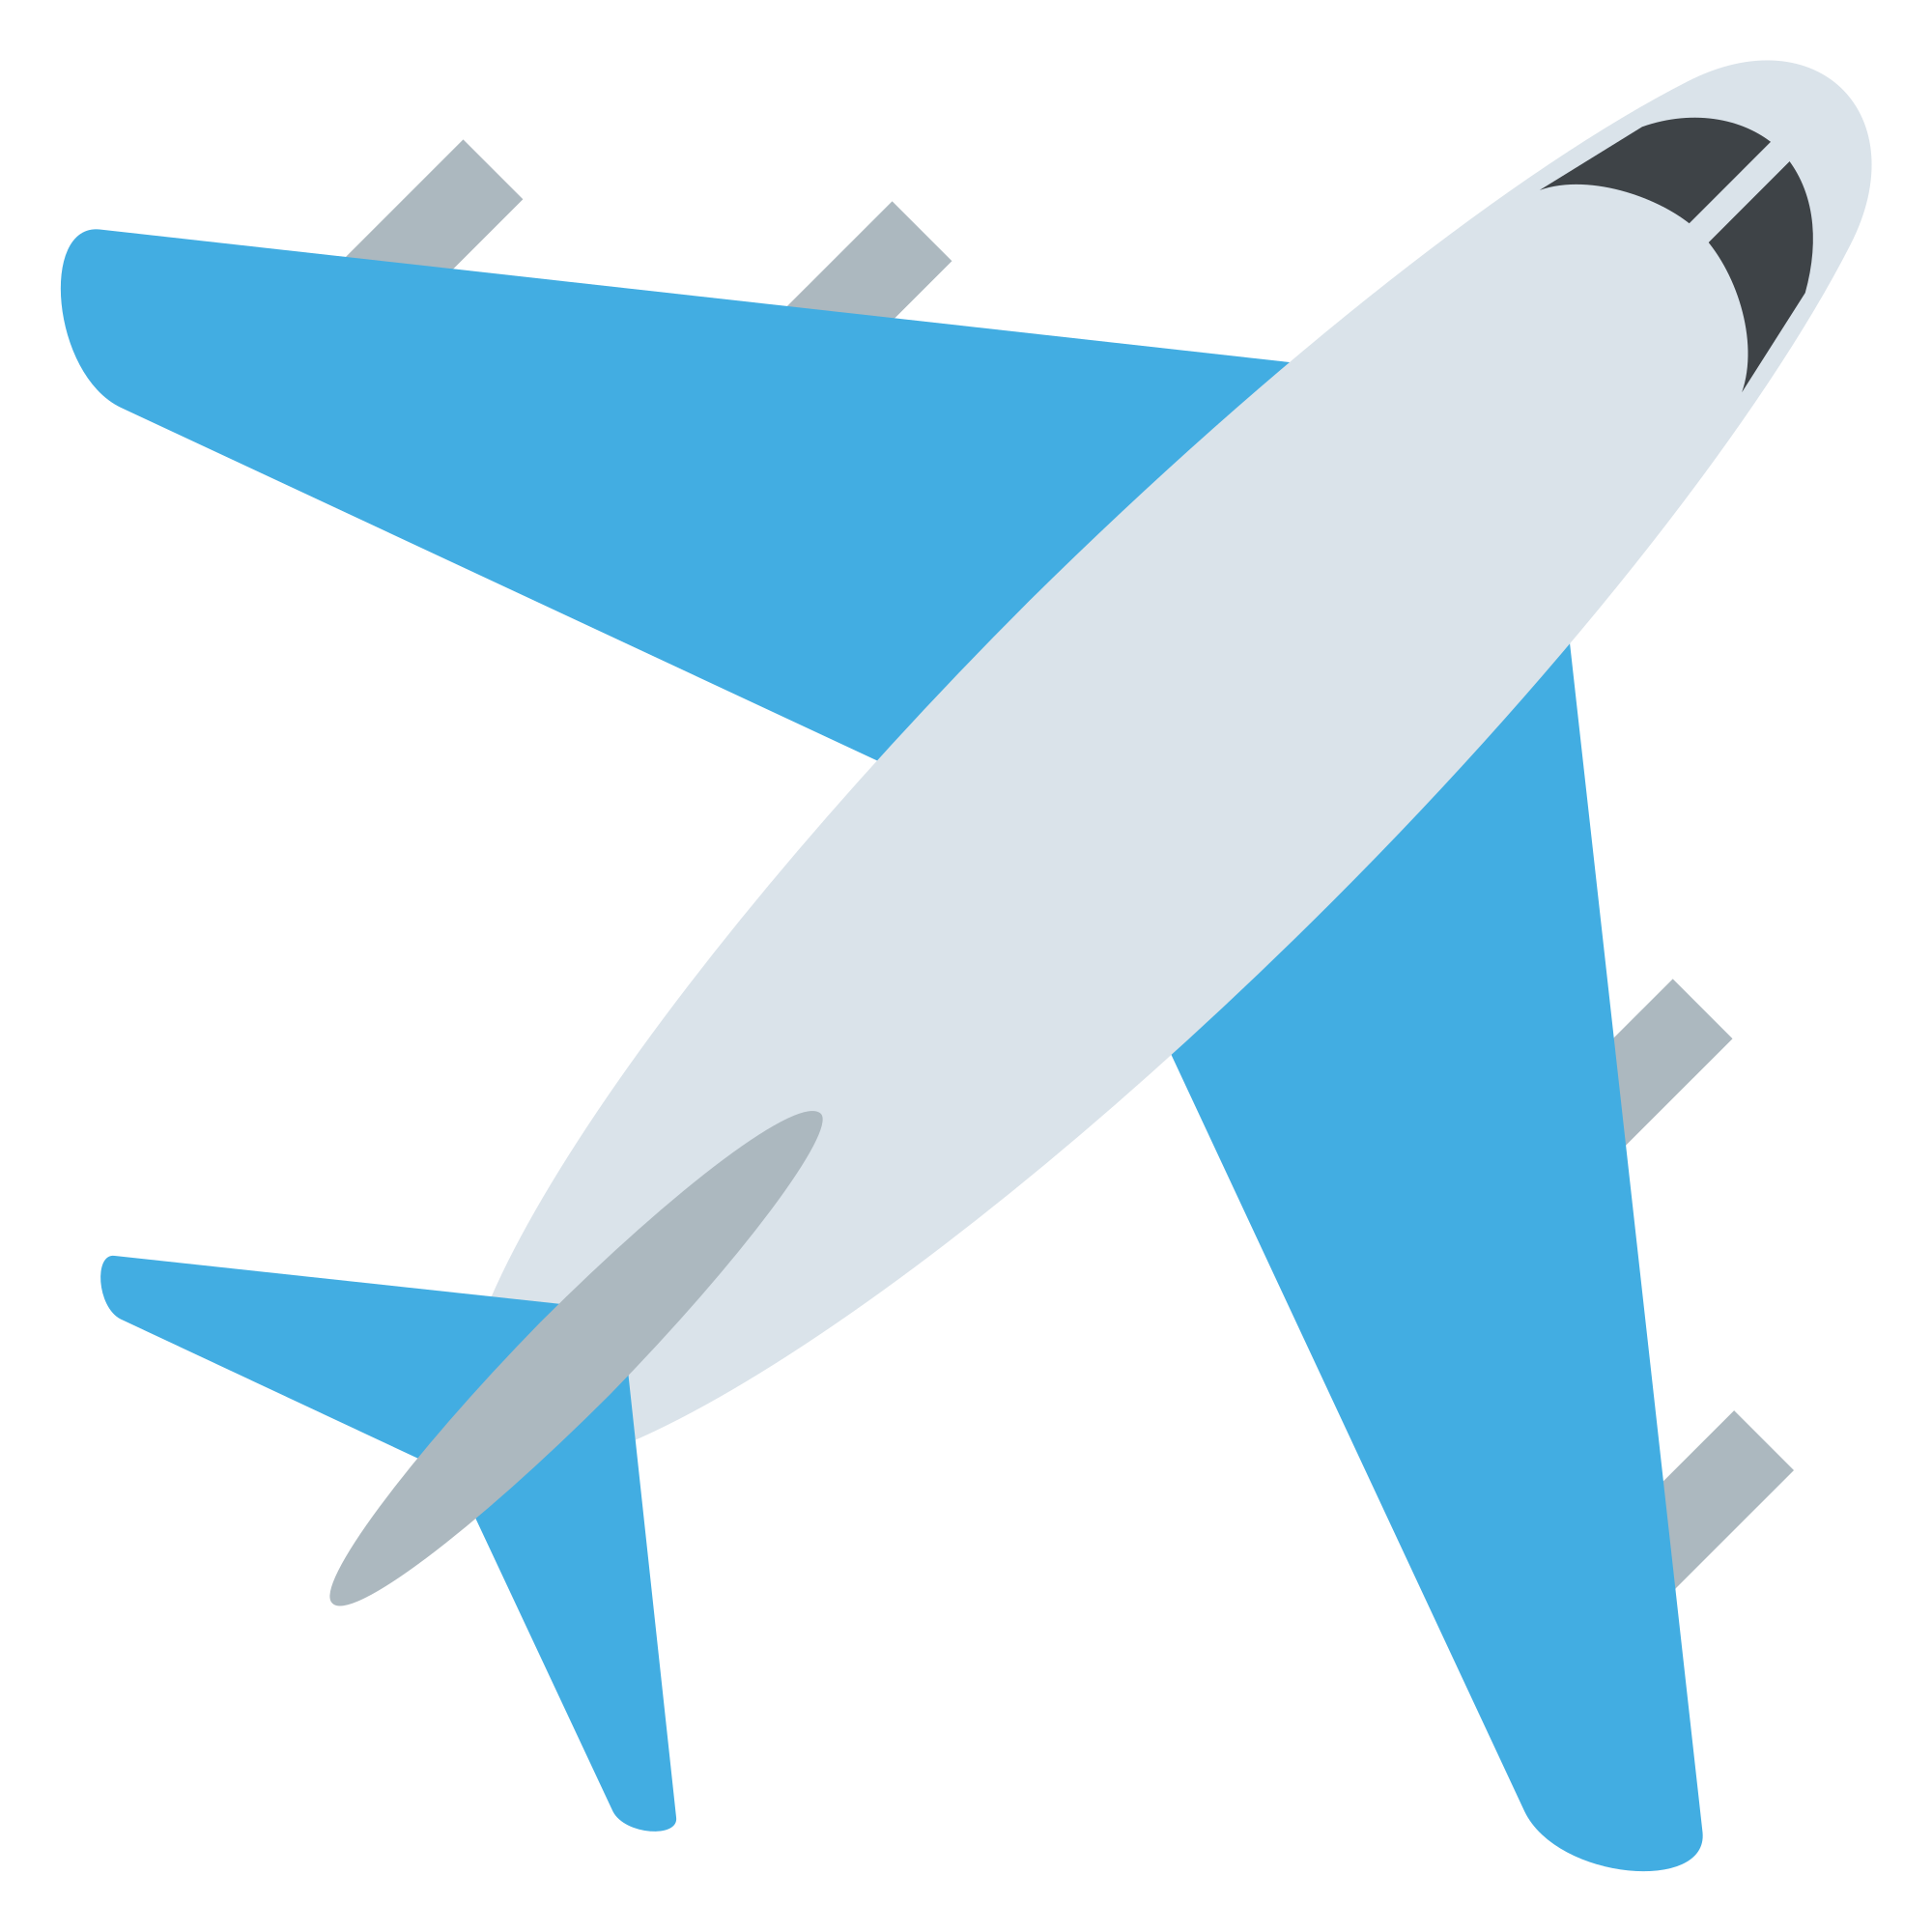 Plane svg emoticon. File emojione wikimedia commons